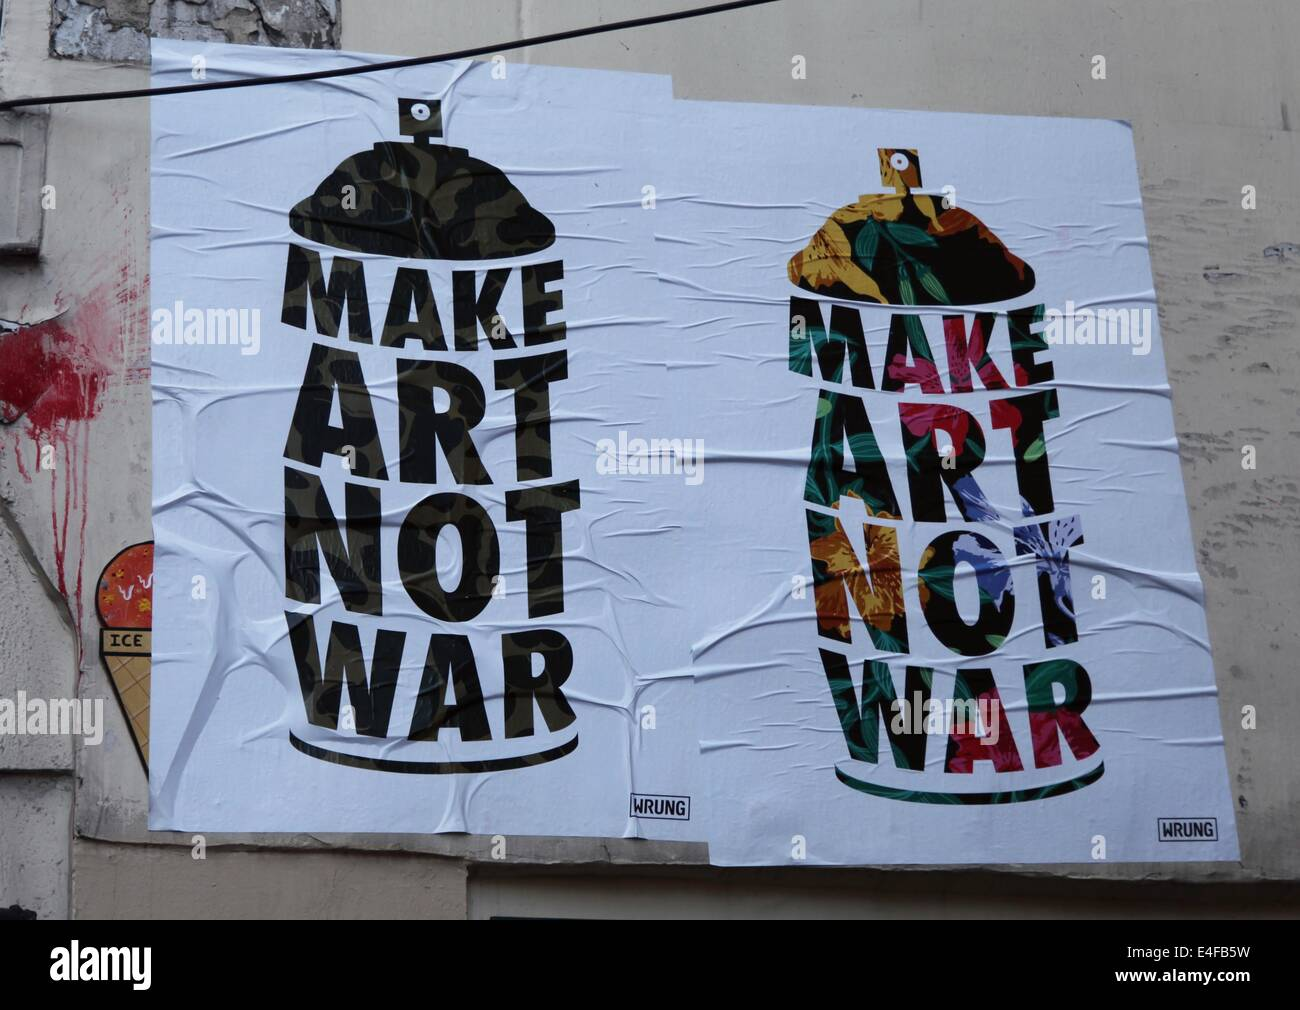 it 39 s a photo of two street art posters in paris city in france make stock photo 71638165 alamy. Black Bedroom Furniture Sets. Home Design Ideas